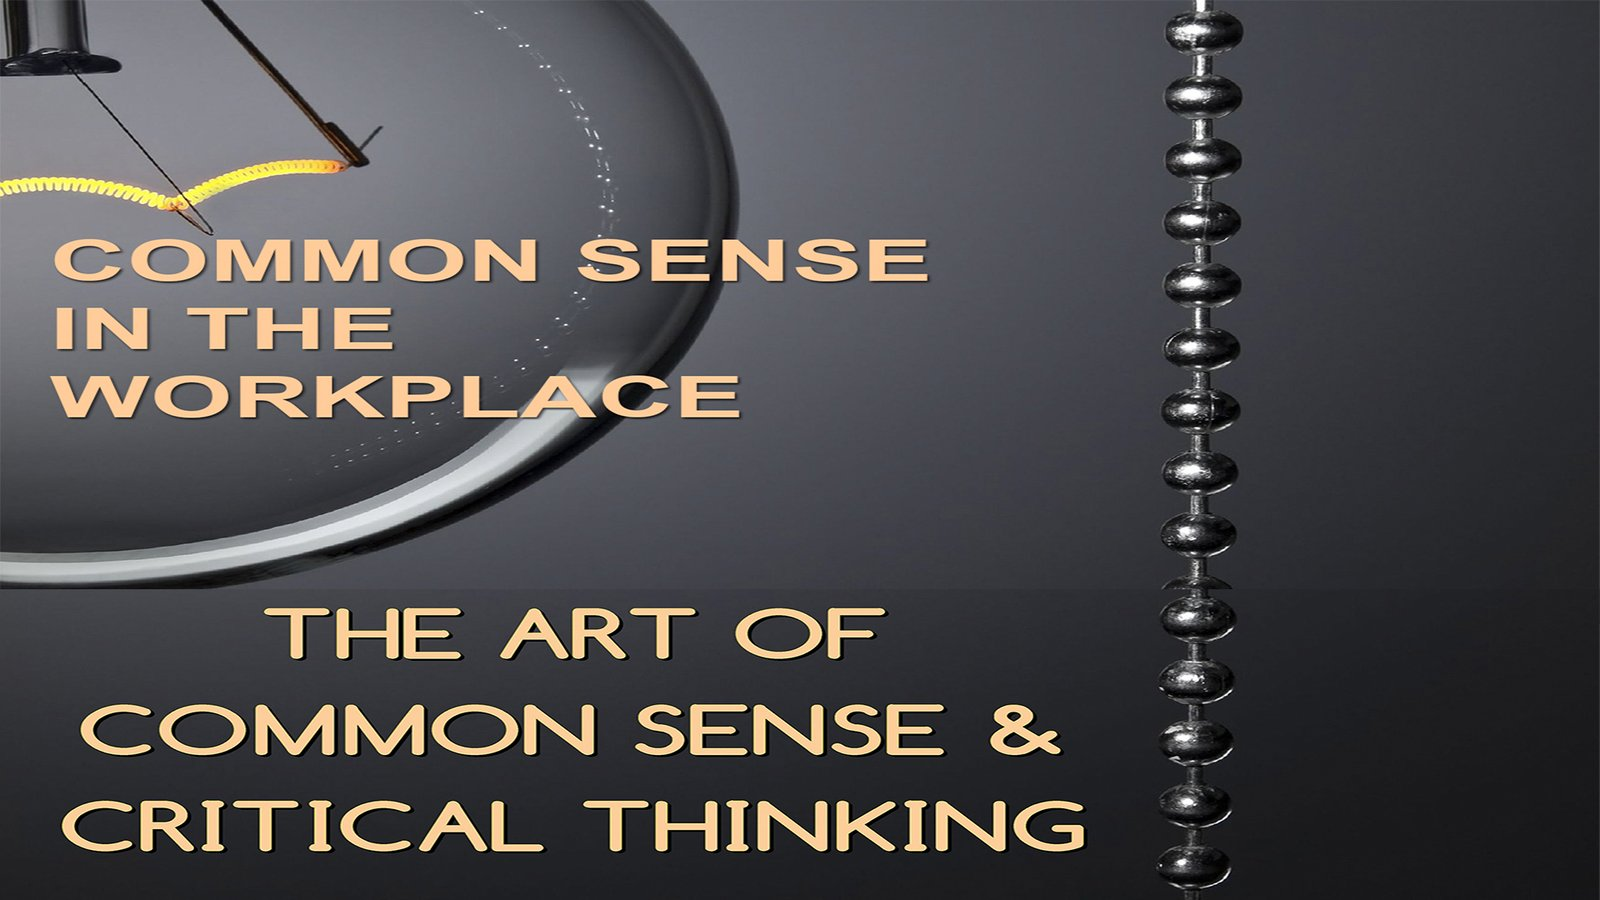 Employee Training The Art of Common Sense & Critical Thinking: Common Sense In The Workplace